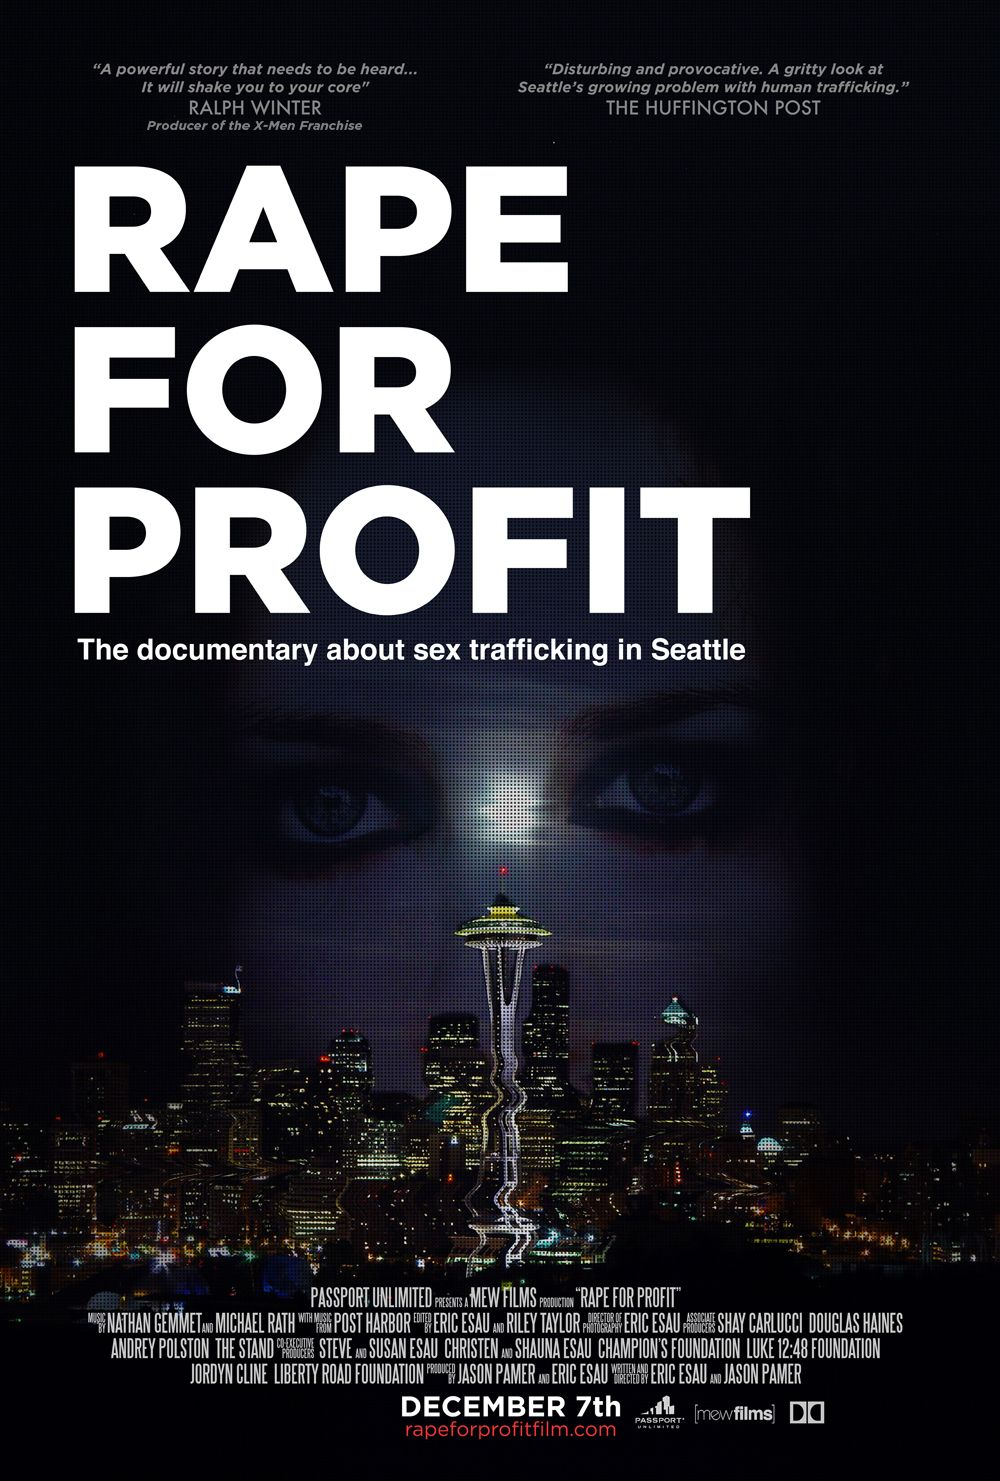 Rape For Profit documentary. Uncovering the Sex Slavery, Human Trafficking & Child Prostitution Found